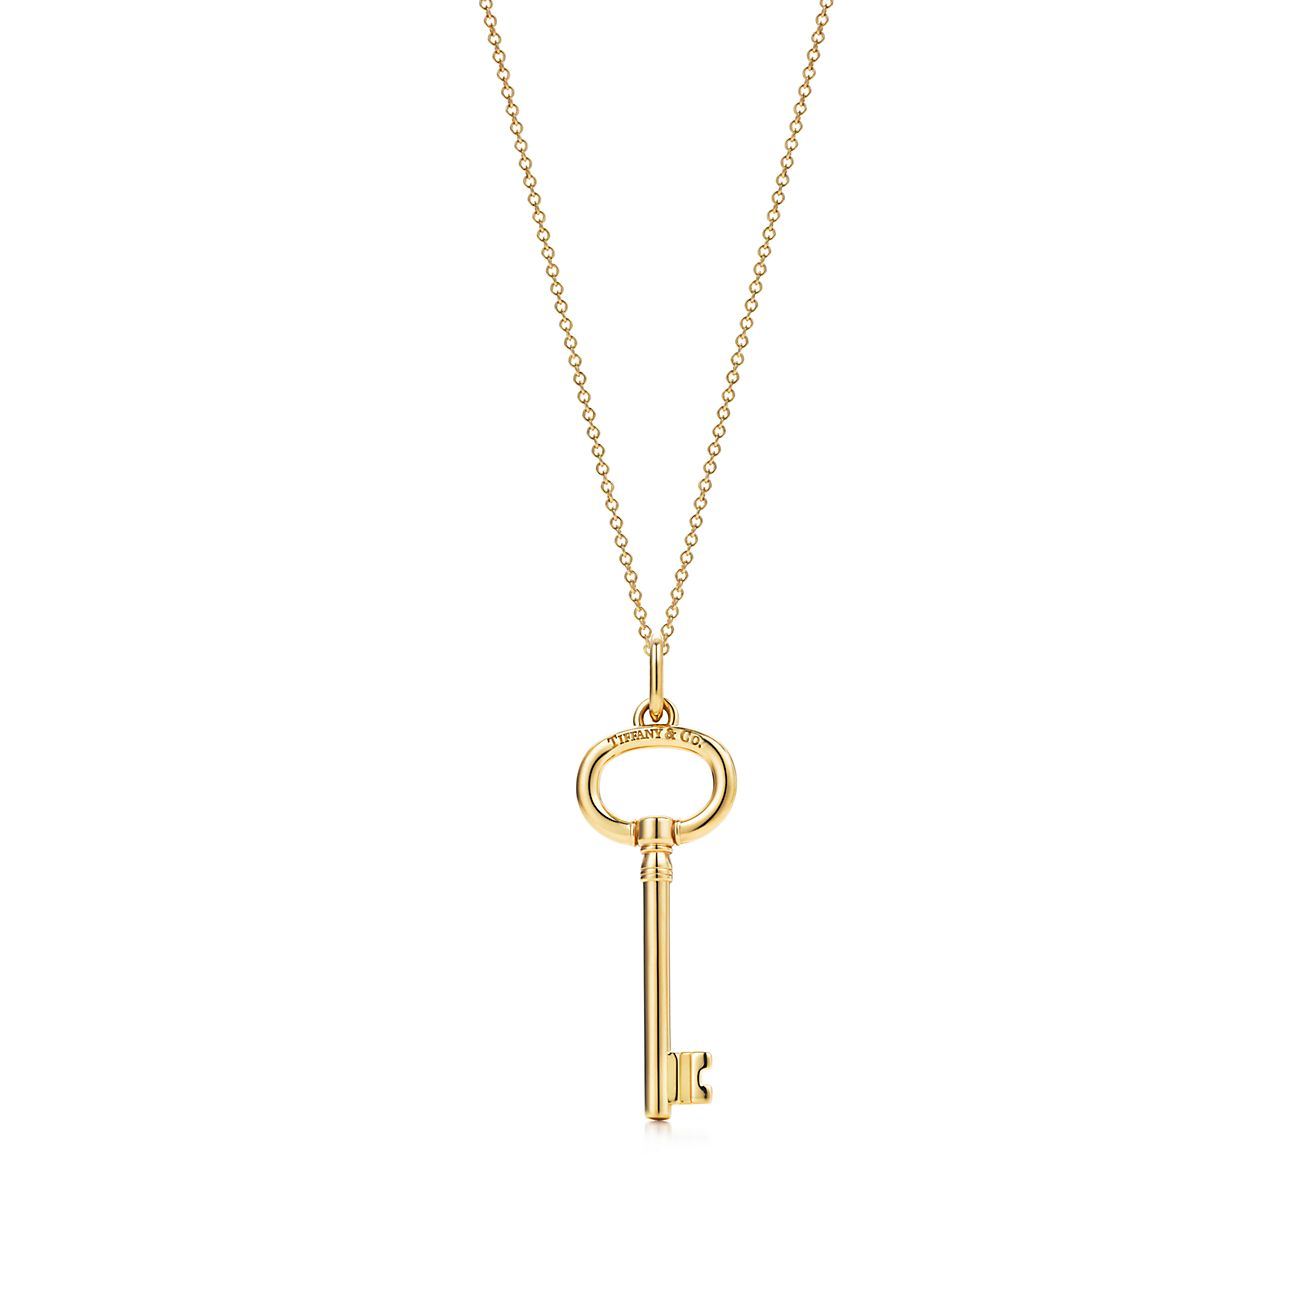 Tiffany keys oval key pendant in 18k gold on a chain tiffany co tiffany keys oval key pendant aloadofball Gallery